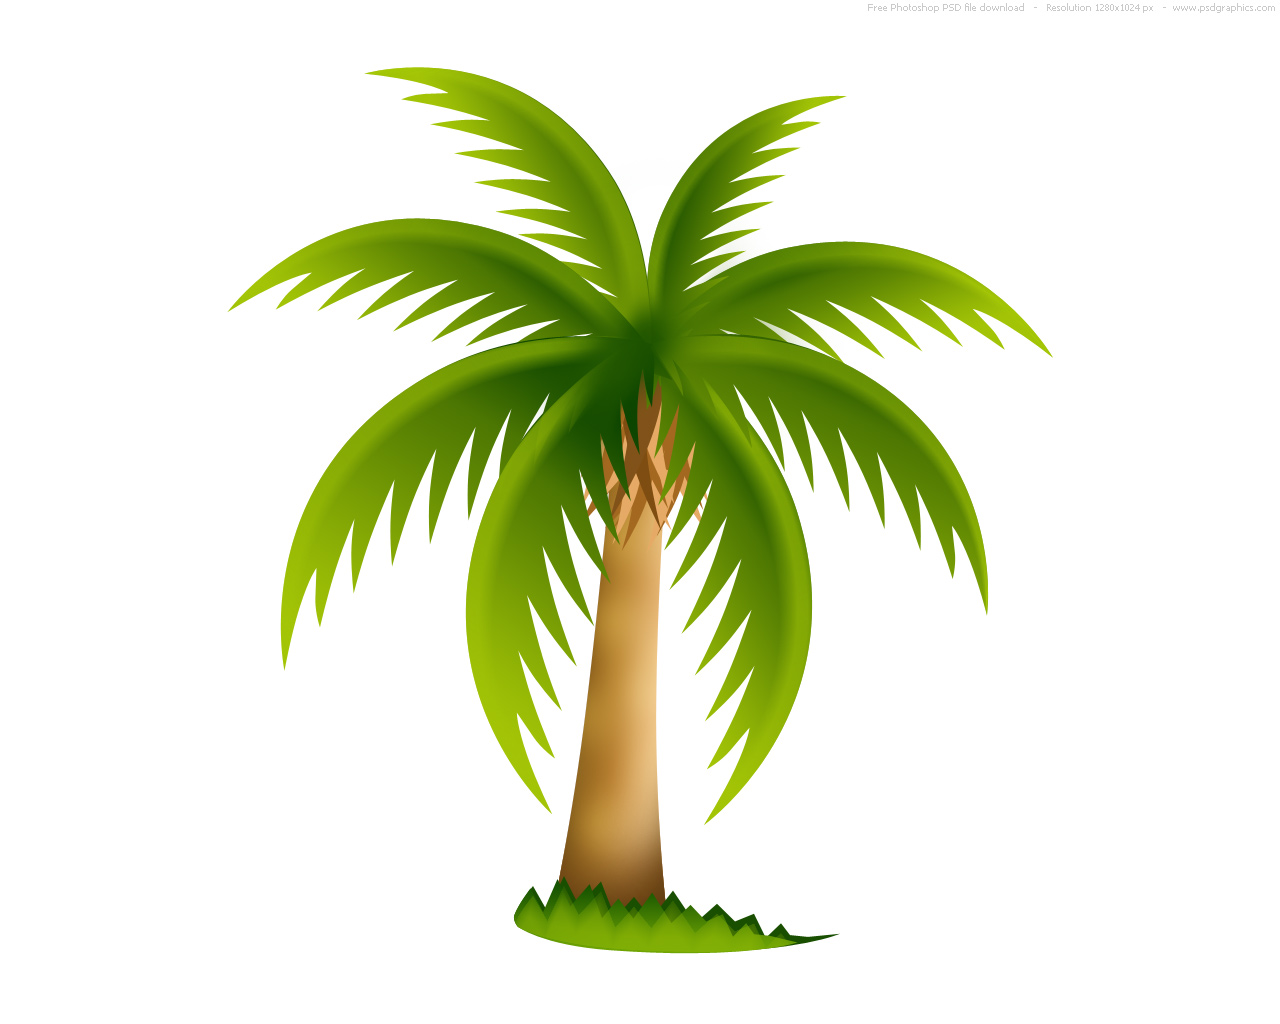 palm tree clip art - photo #7